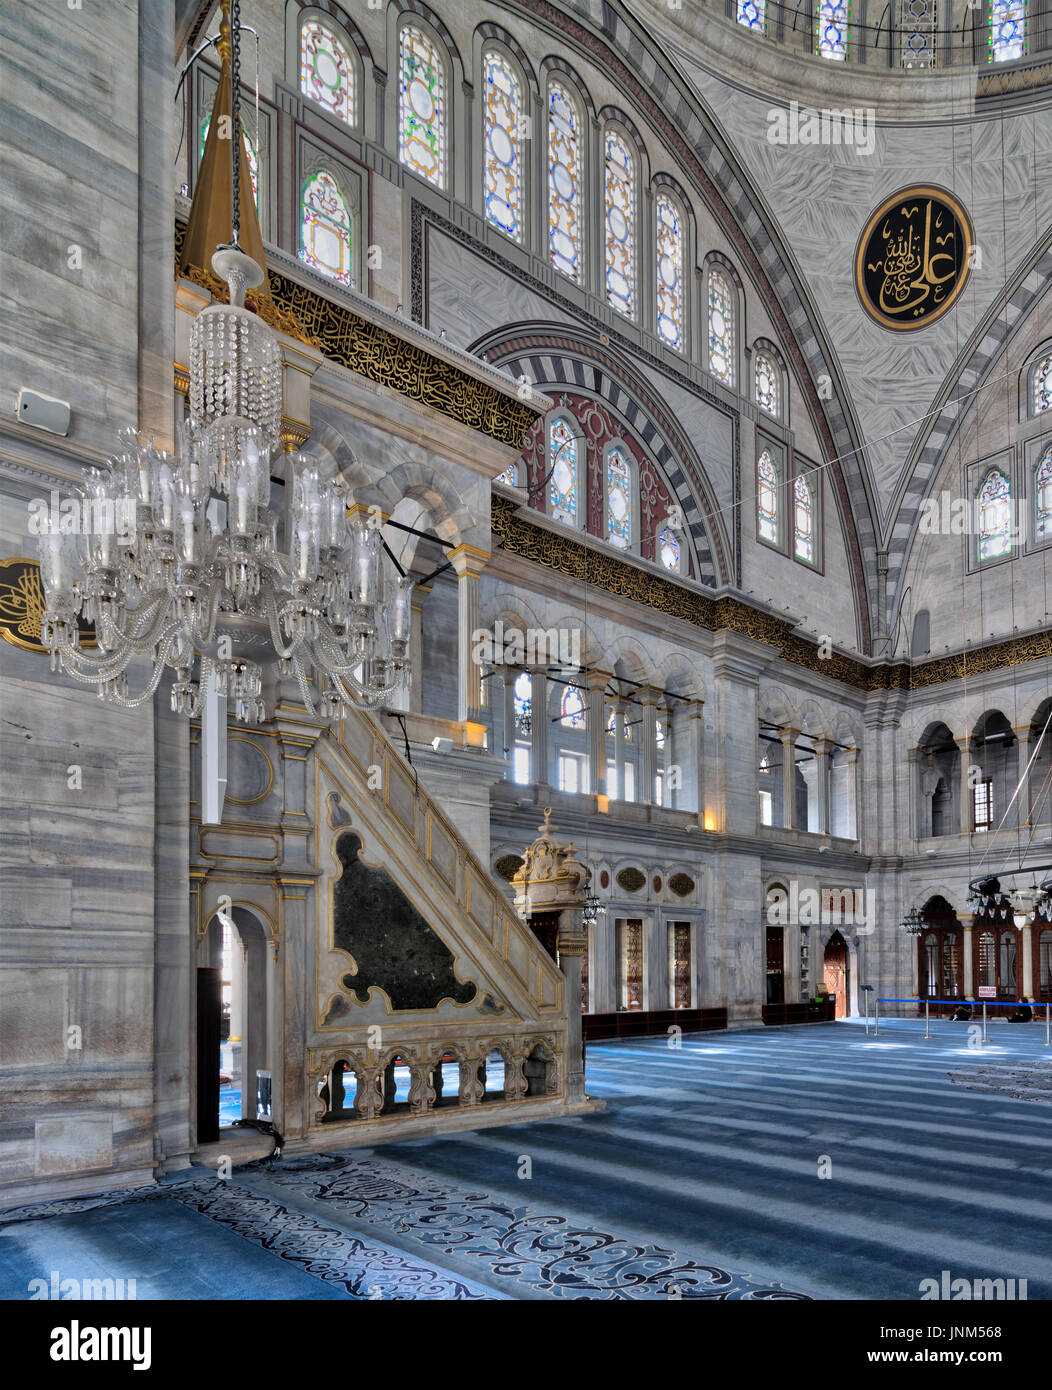 Interior facade of Nuruosmaniye Mosque, an Ottoman Baroque style mosque completed in 1755, with a huge arch & many colored stained glass windows locat - Stock Image